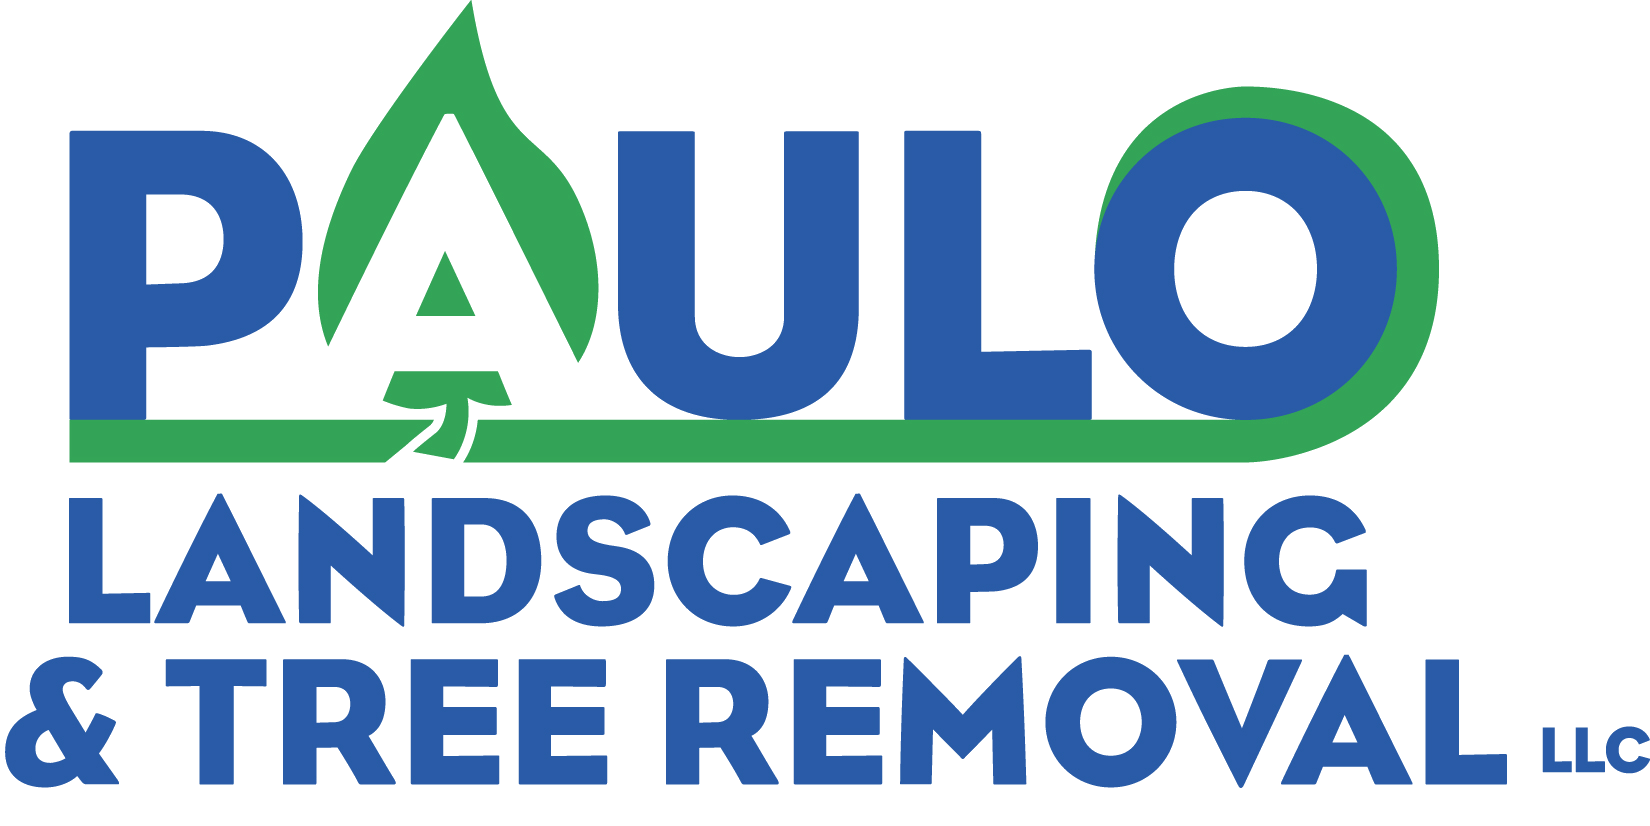 Paulo Landscaping and Tree Removal Orange, CT